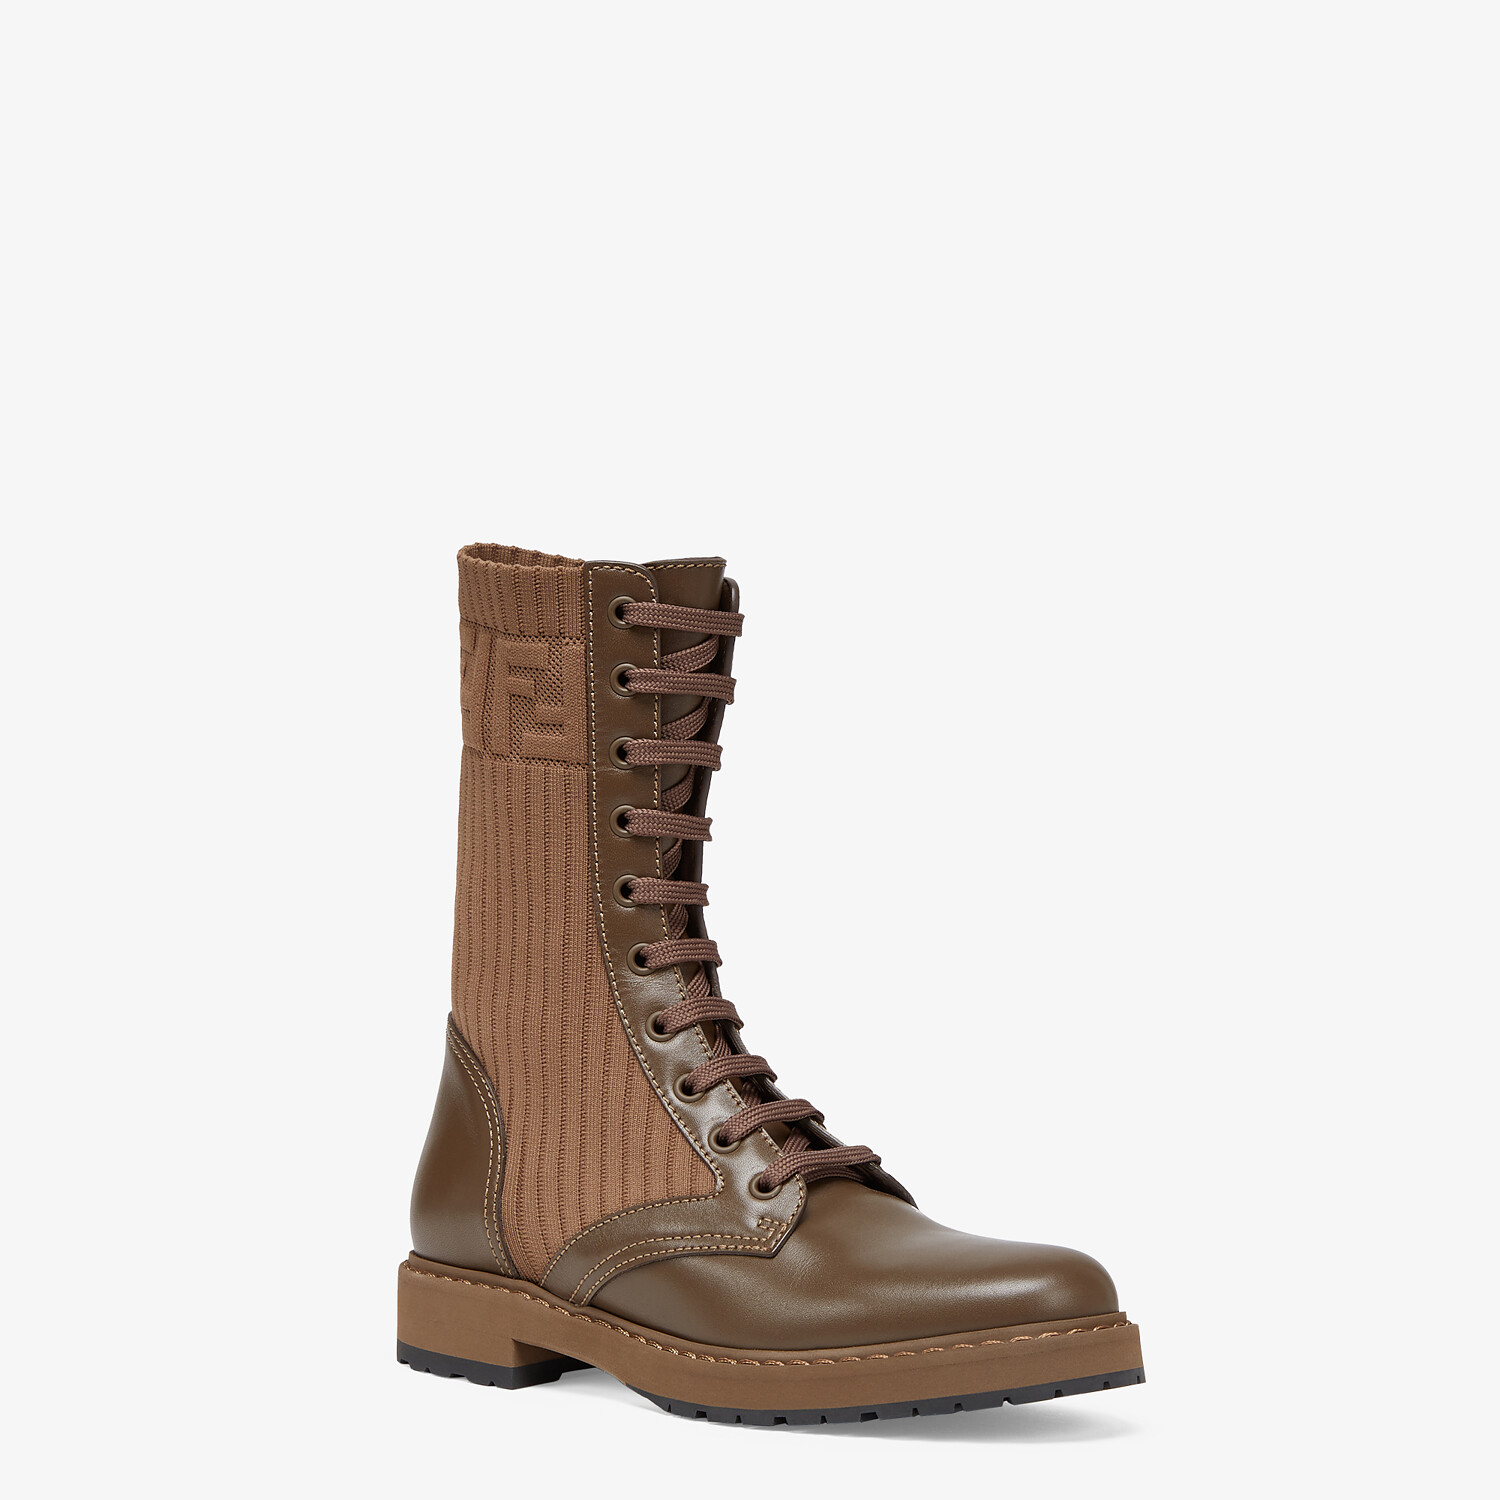 FENDI ROCKOKO - Brown leather biker boots with stretch fabric - view 2 detail